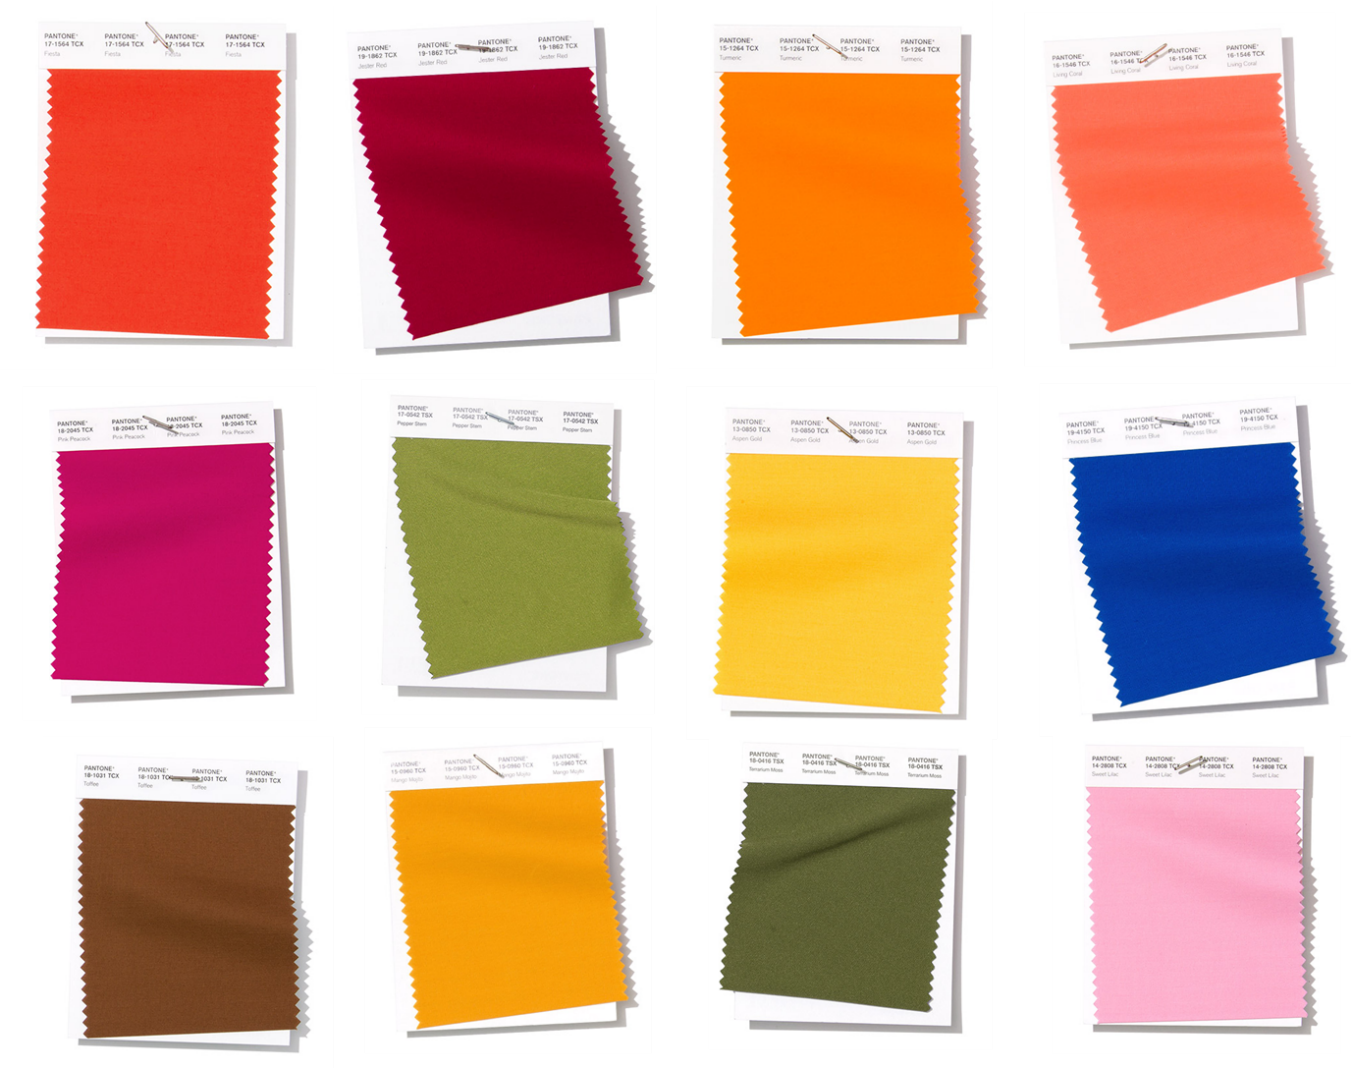 spring_summer_2019_color_trends.png